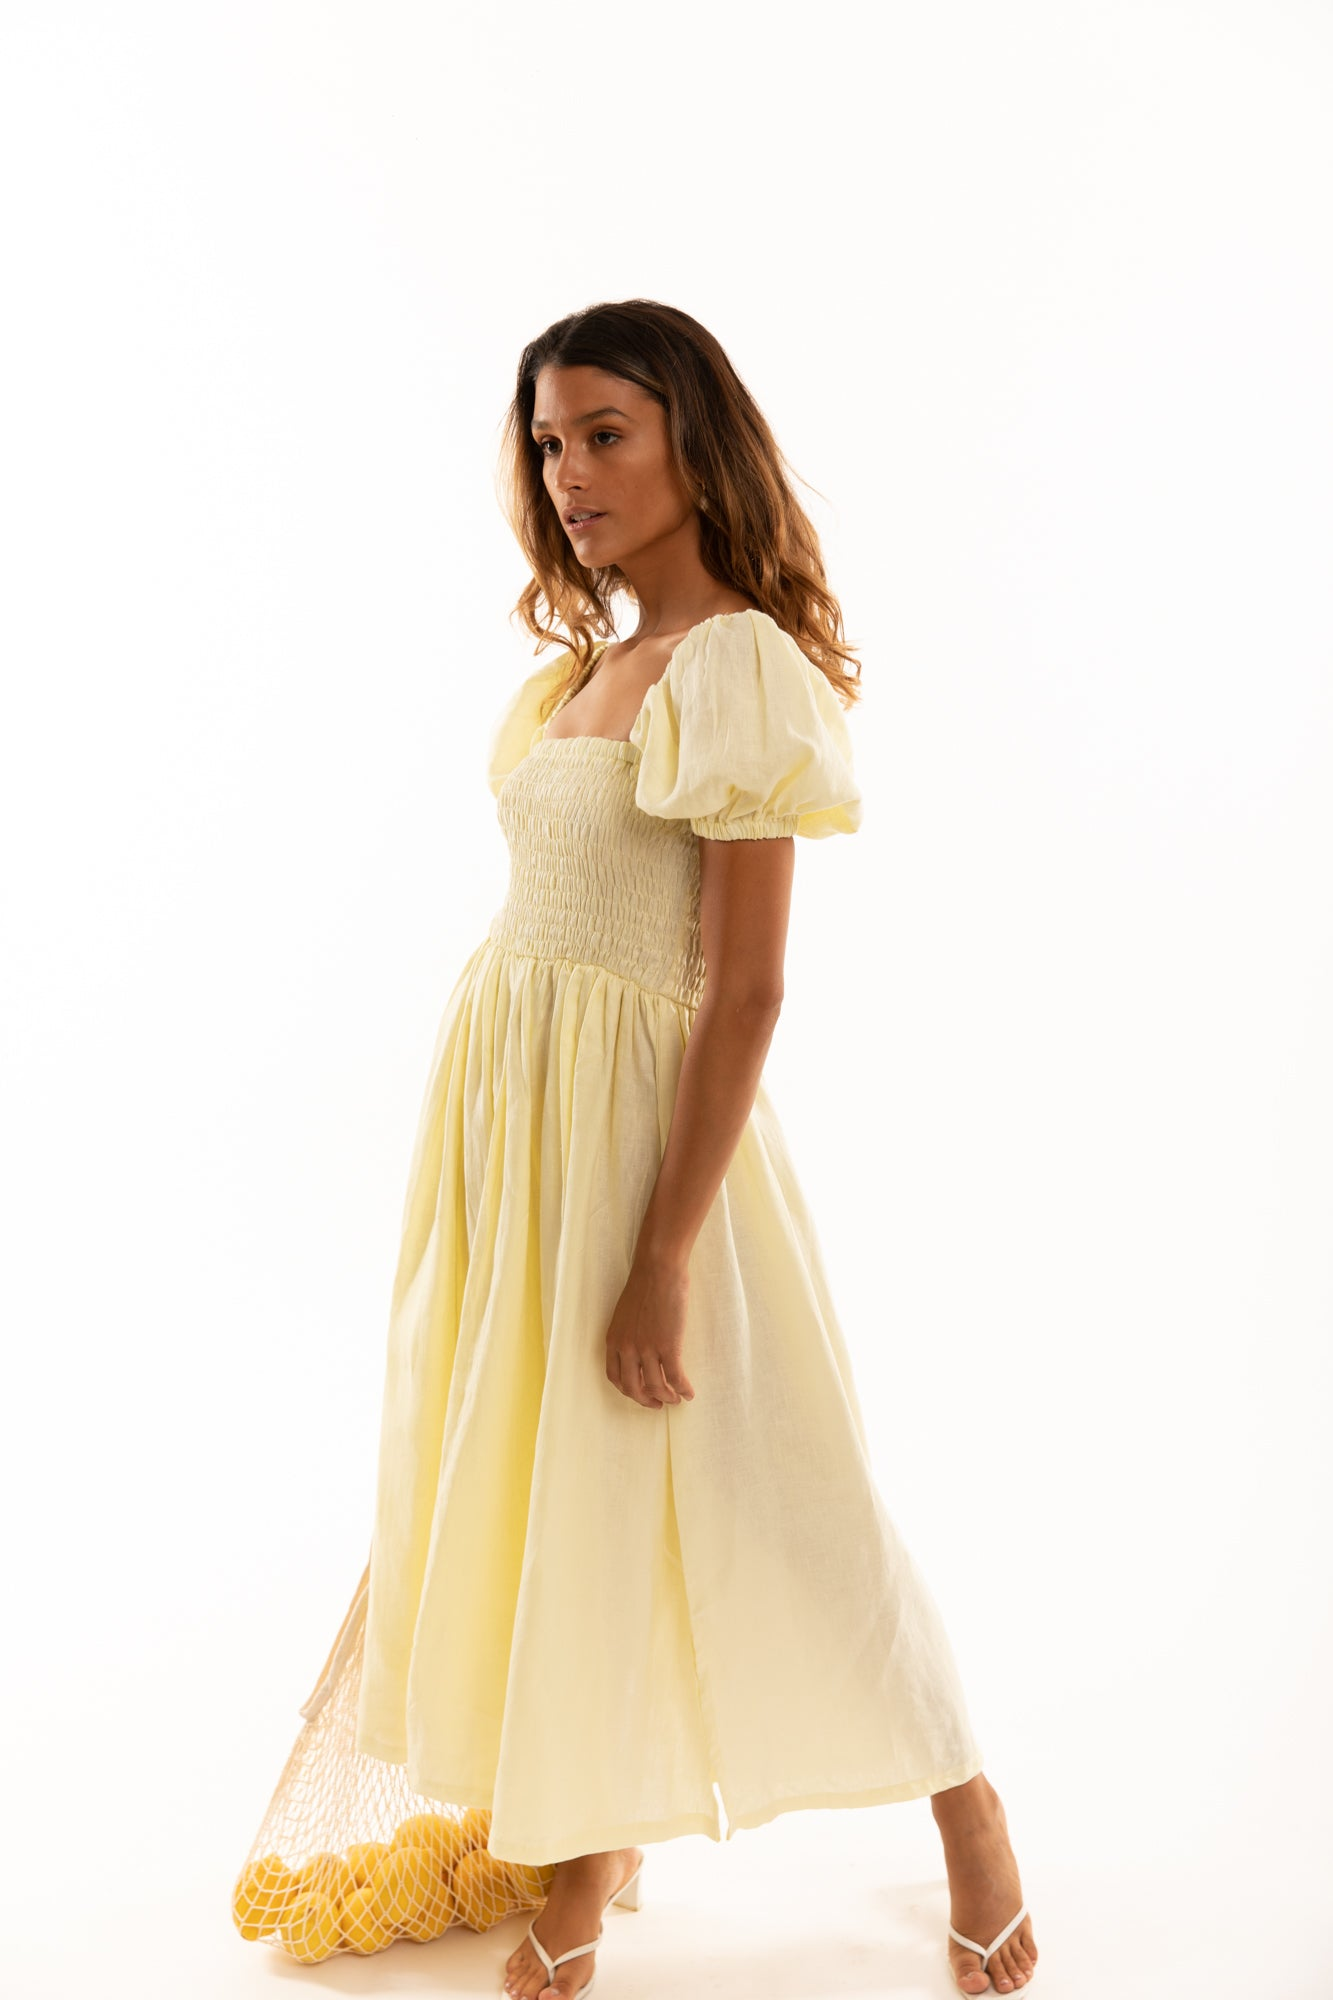 The Laguna Dress in Lemon